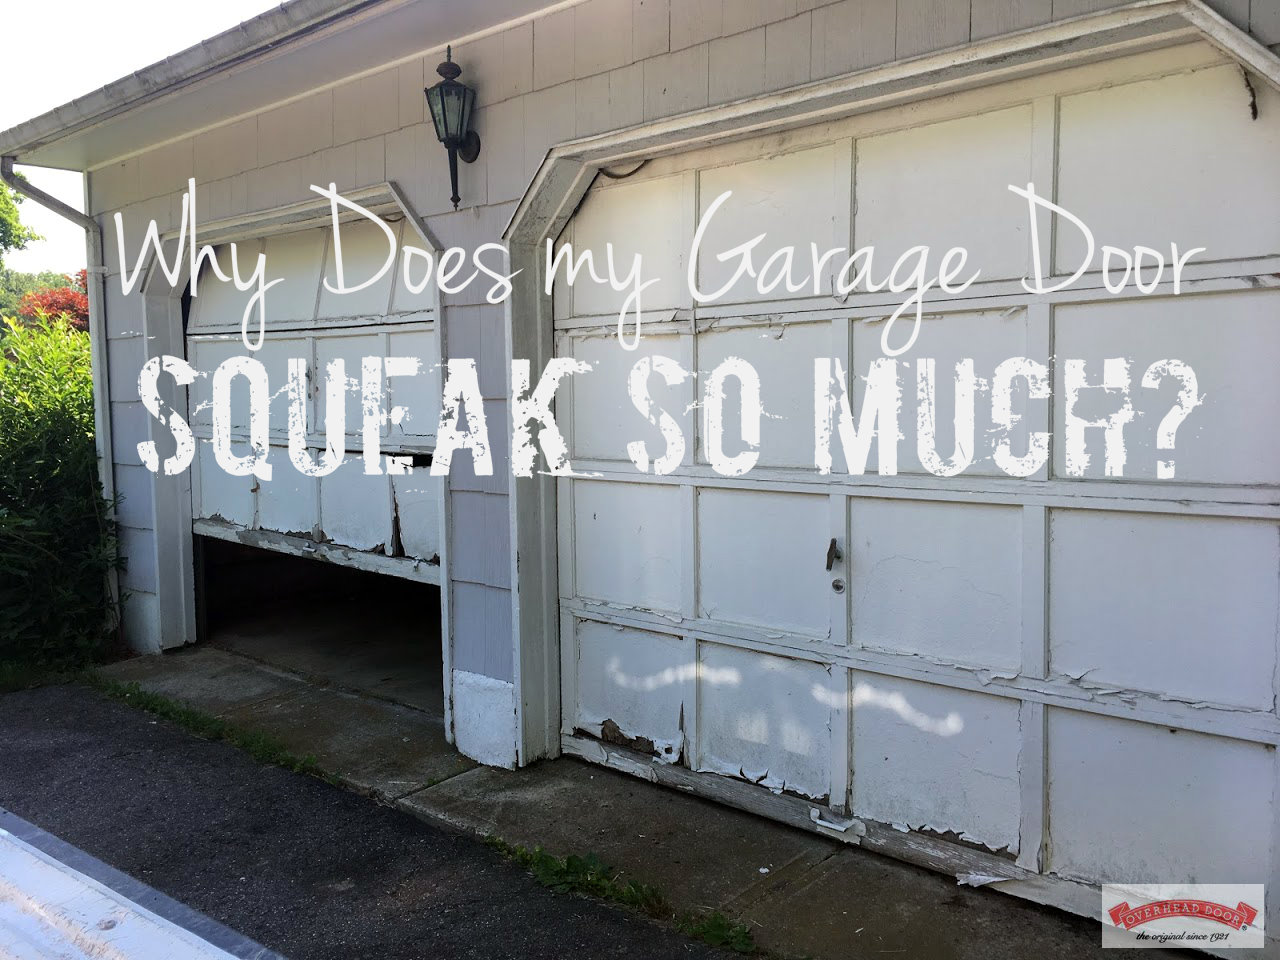 Why Does my Garage Door Squeak So Much?